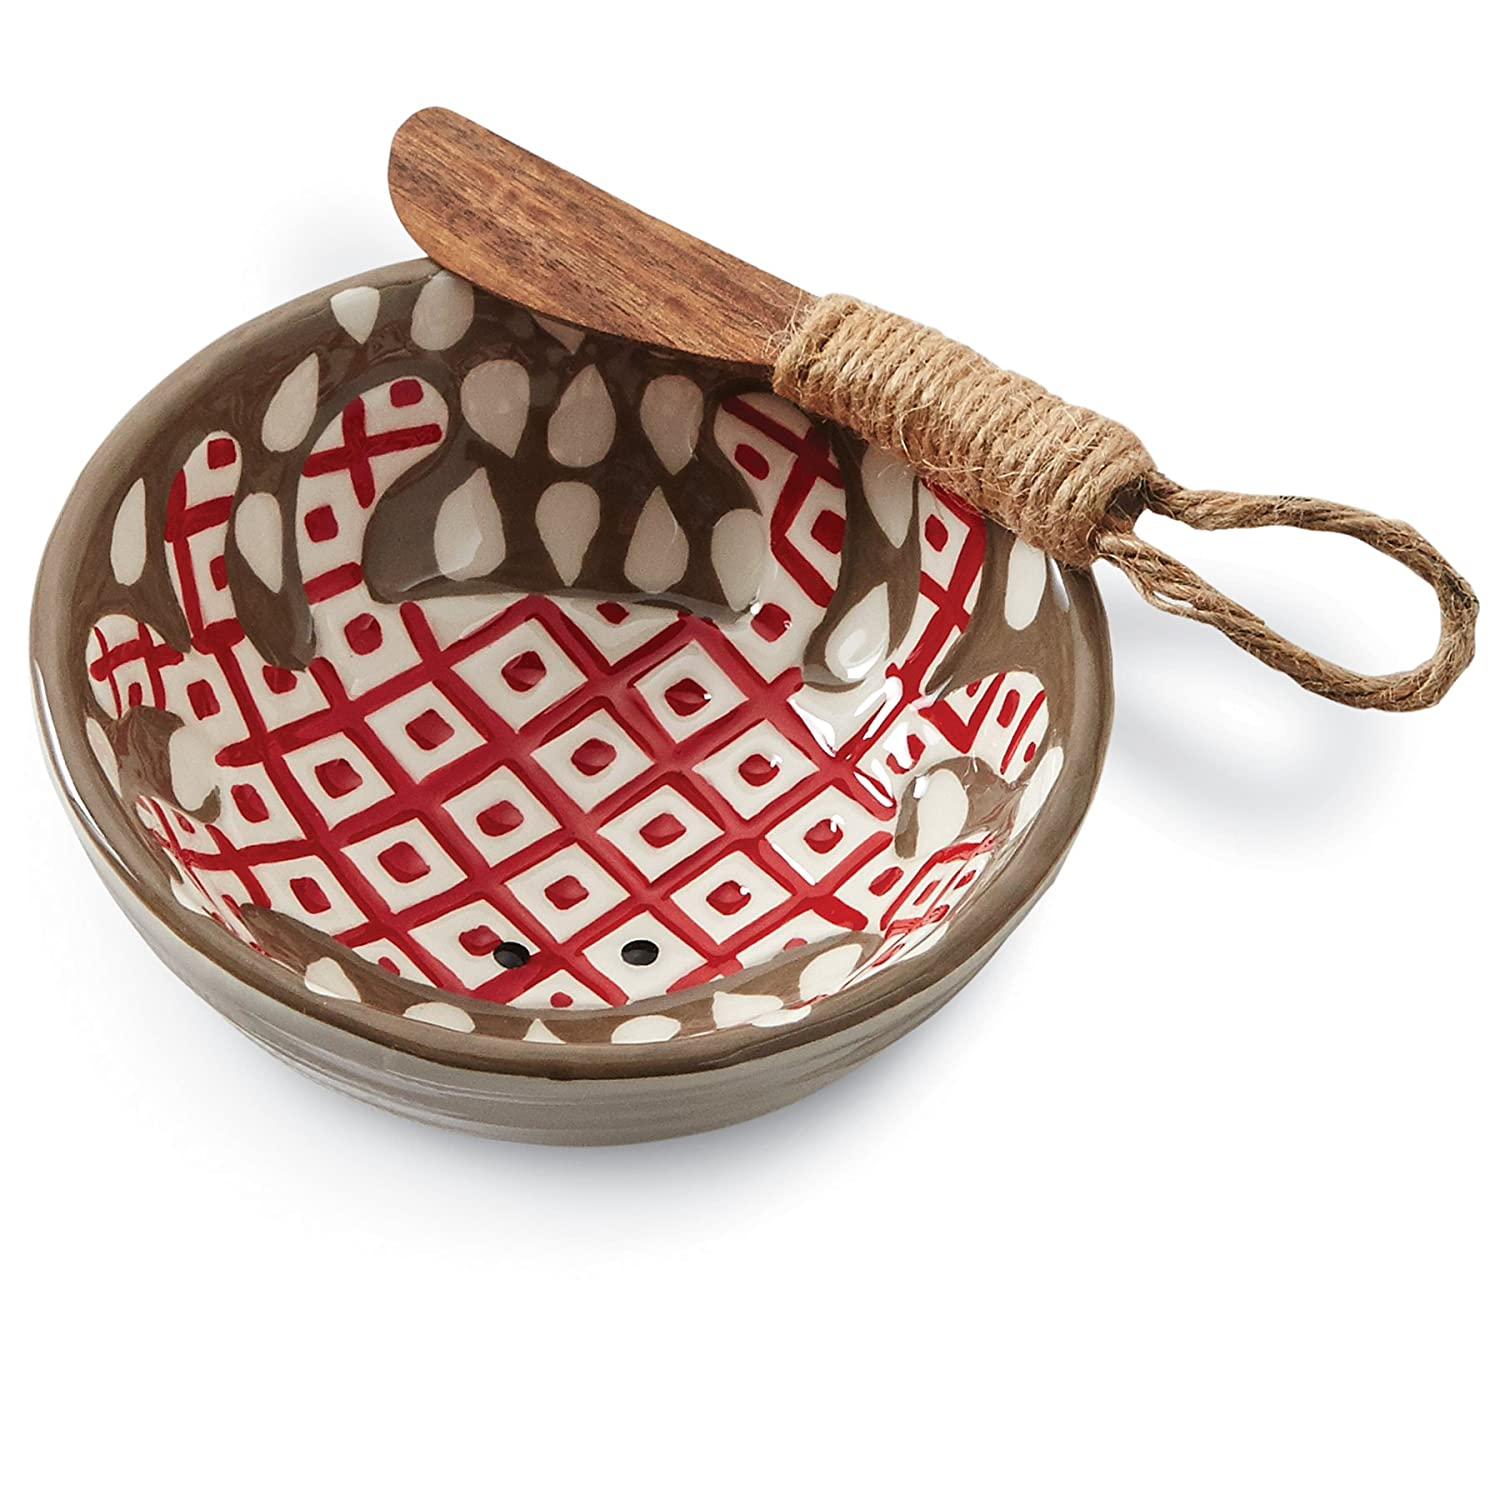 Christmas Tablescape Décor - Mud Pie hand-painted red crab ceramic dip bowl set with wooden spreader